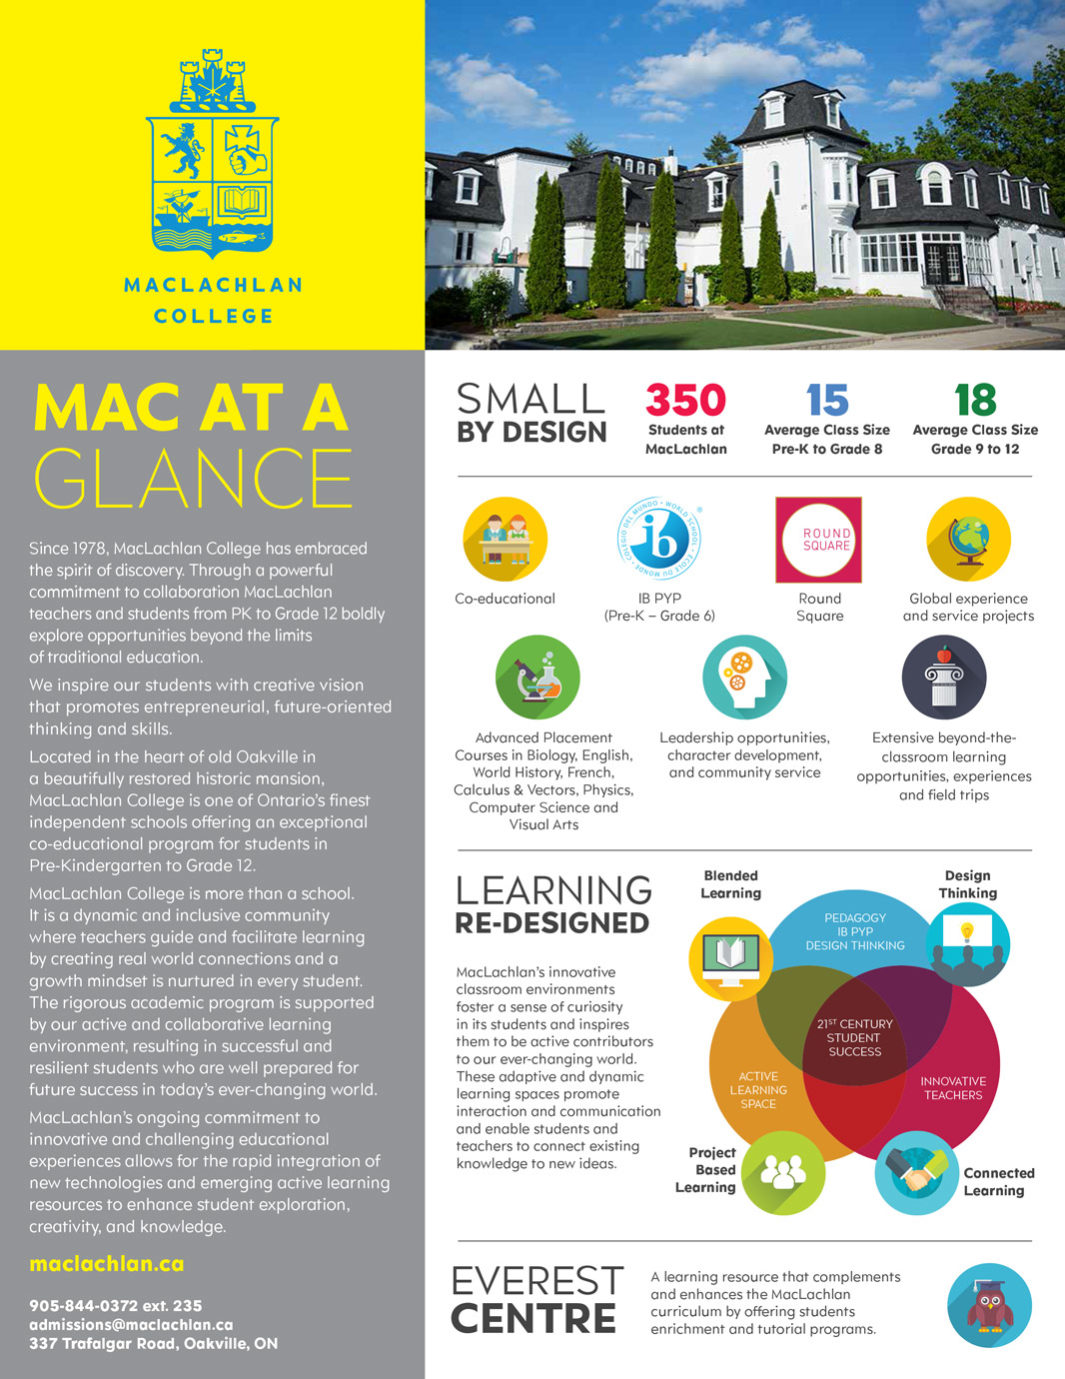 Mac at a glance text 1/2